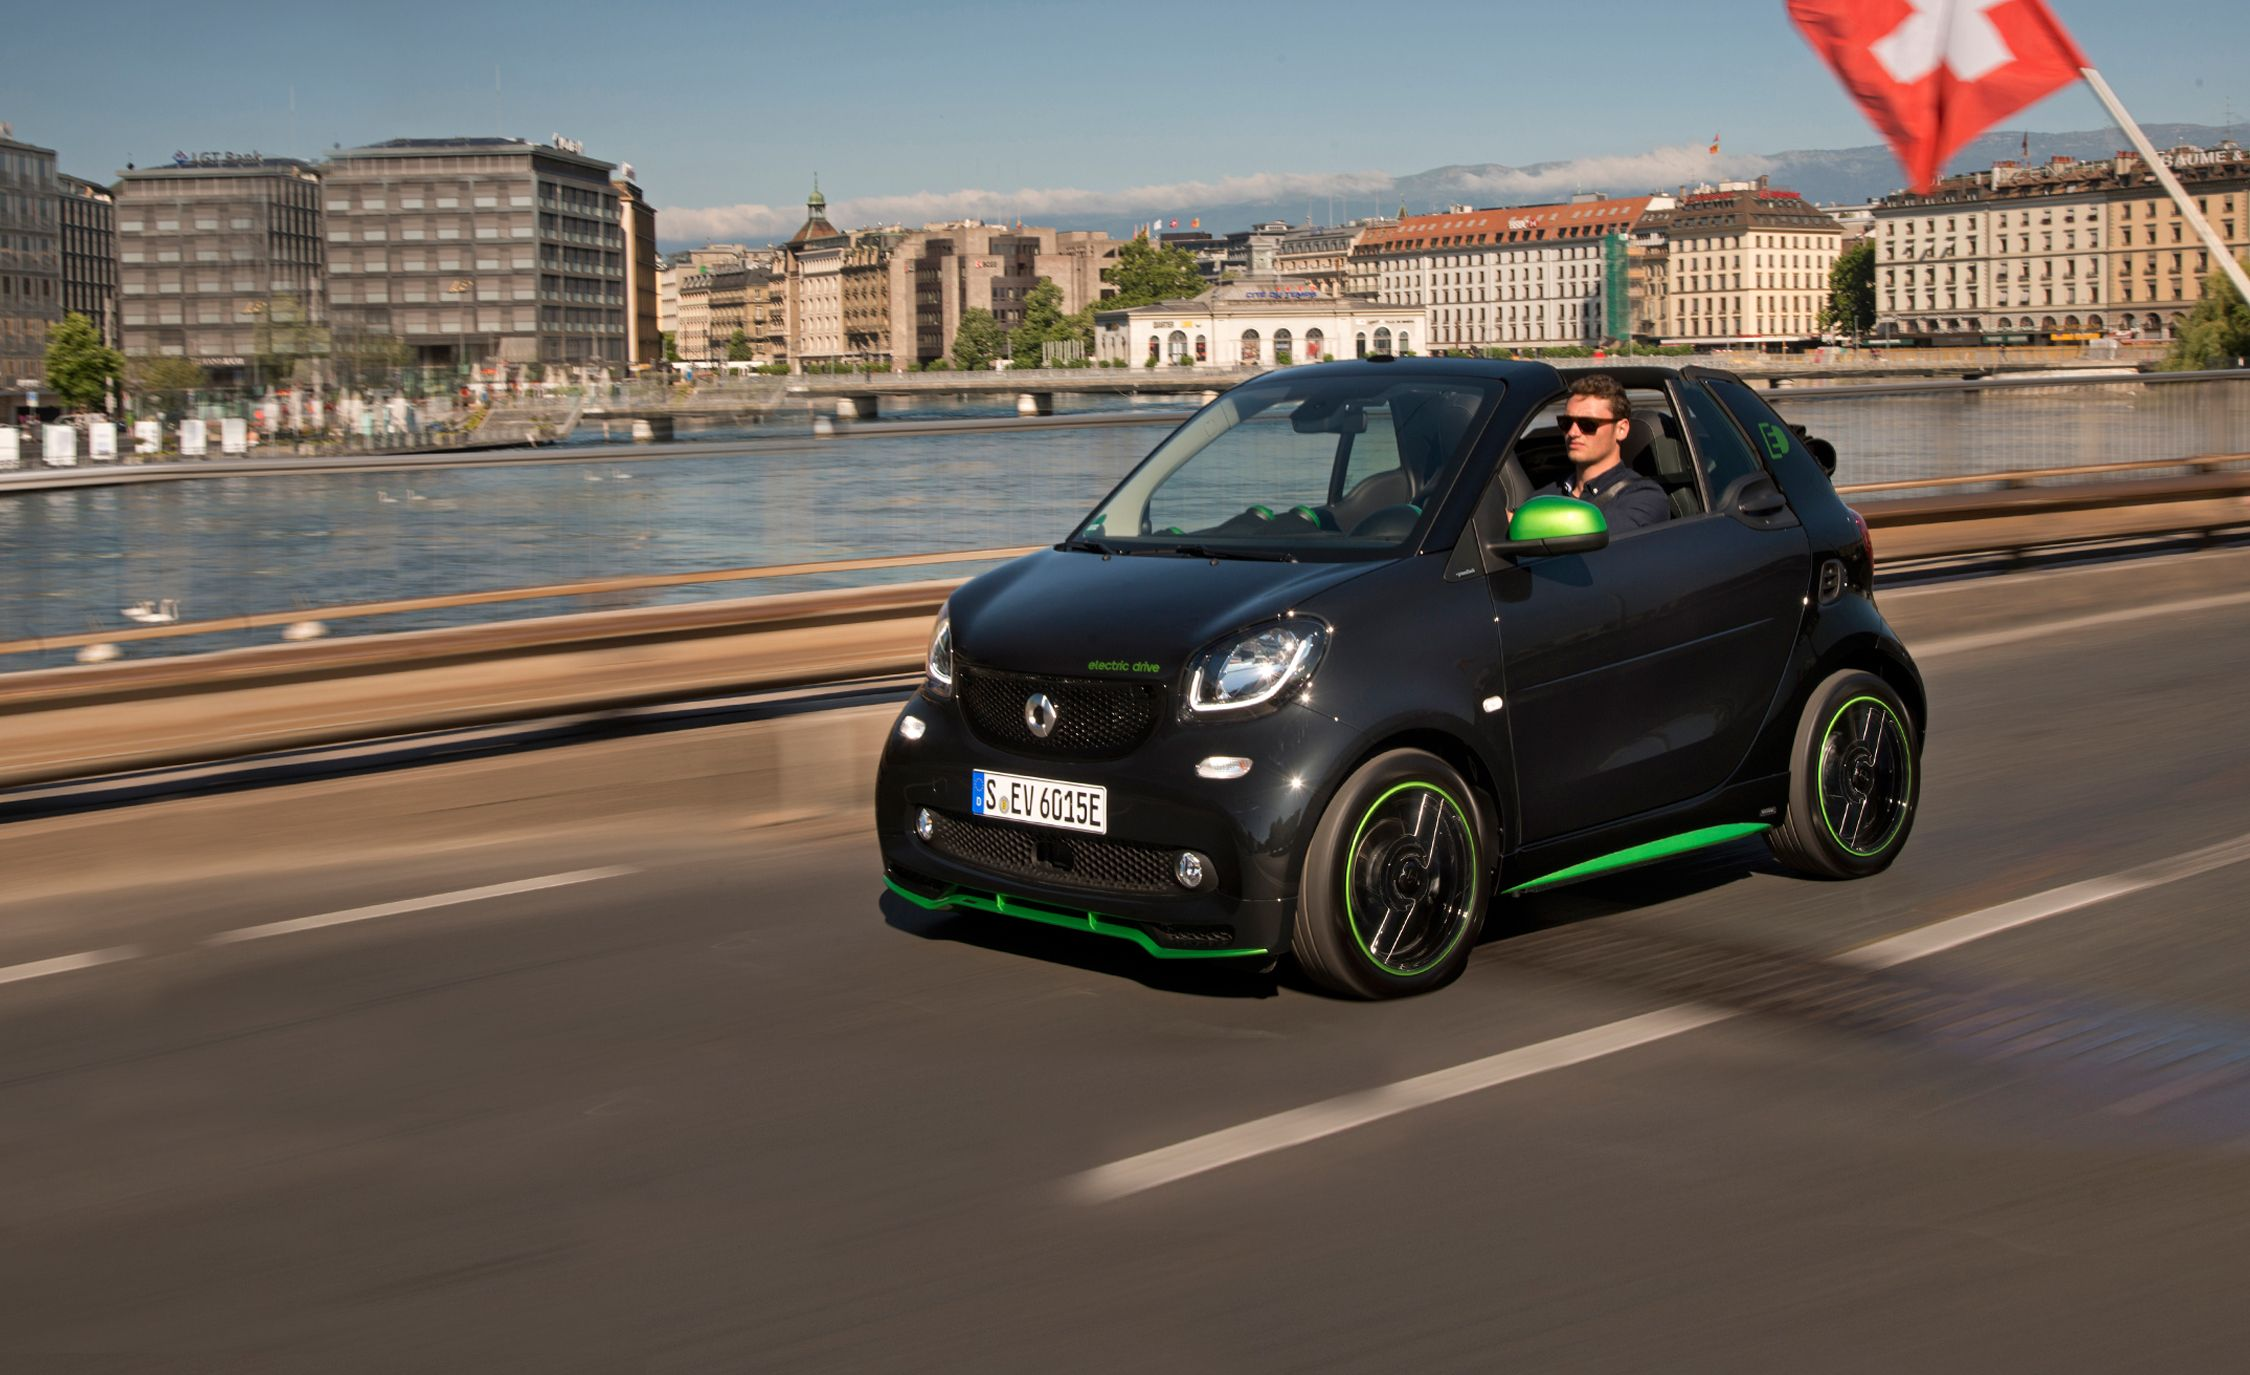 Mercedes Smart Car >> 2018 Smart Fortwo Electric Drive Cabriolet First Drive Review